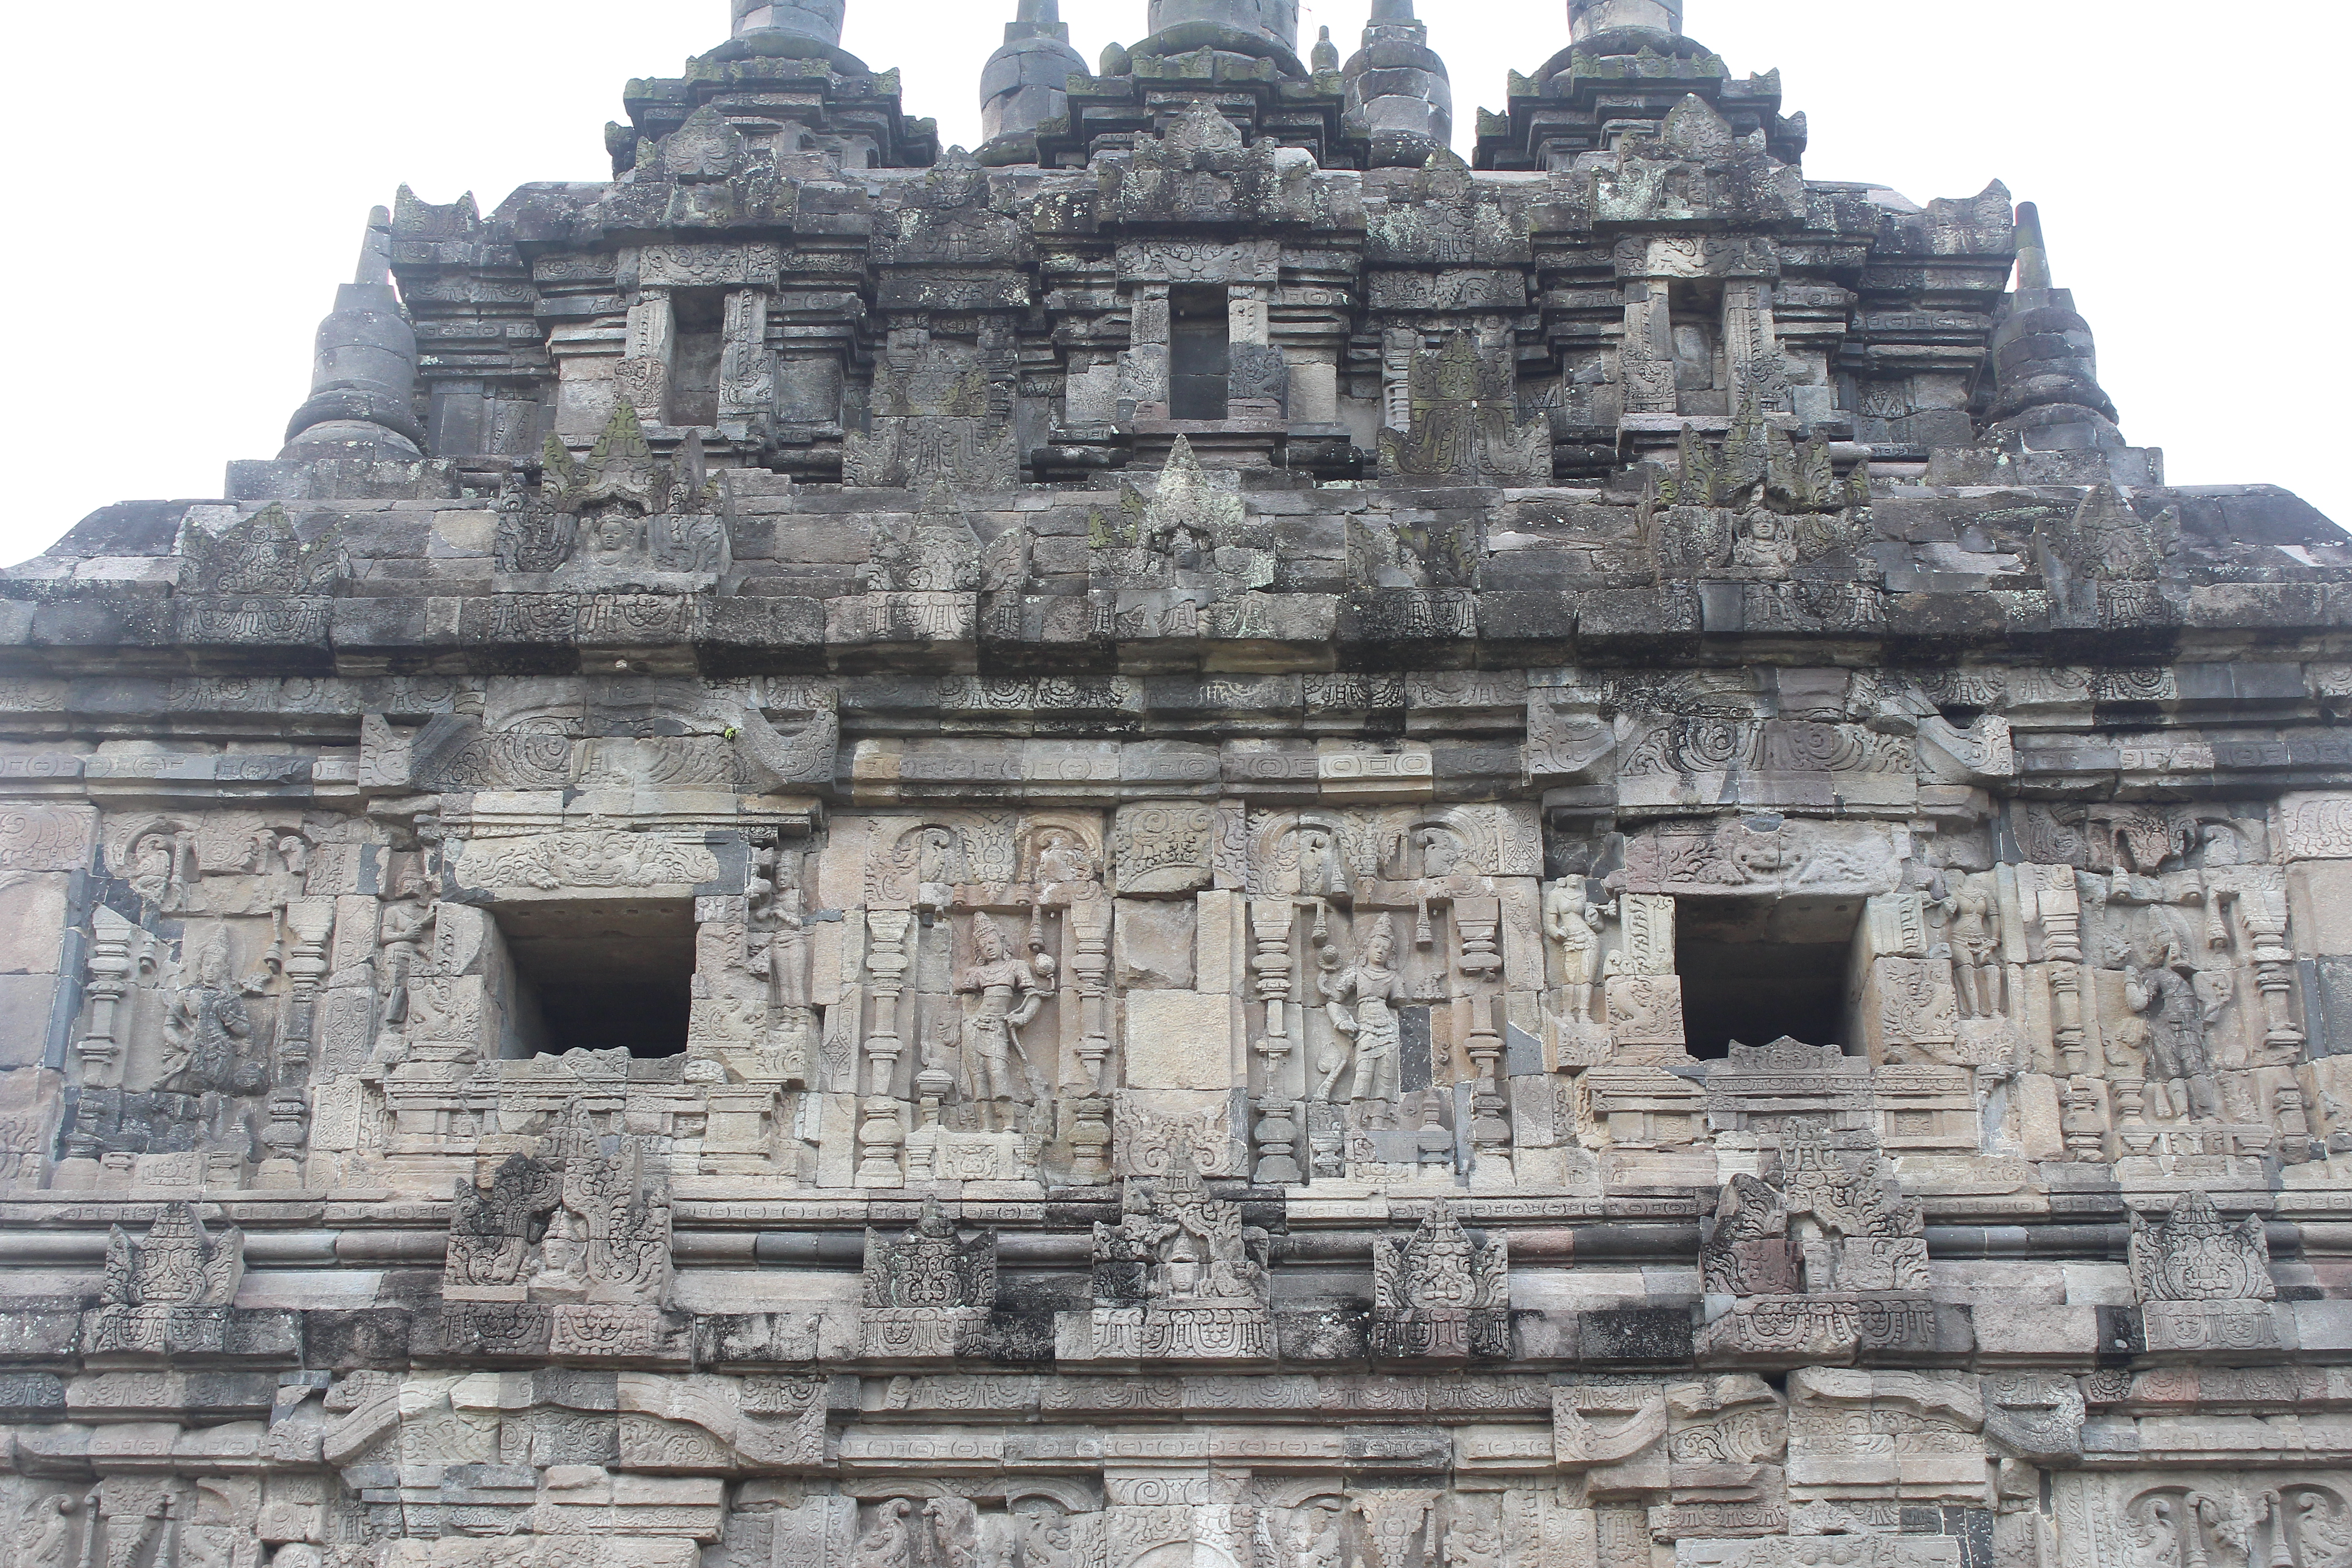 Large stone temple with relief carvings between two apertures